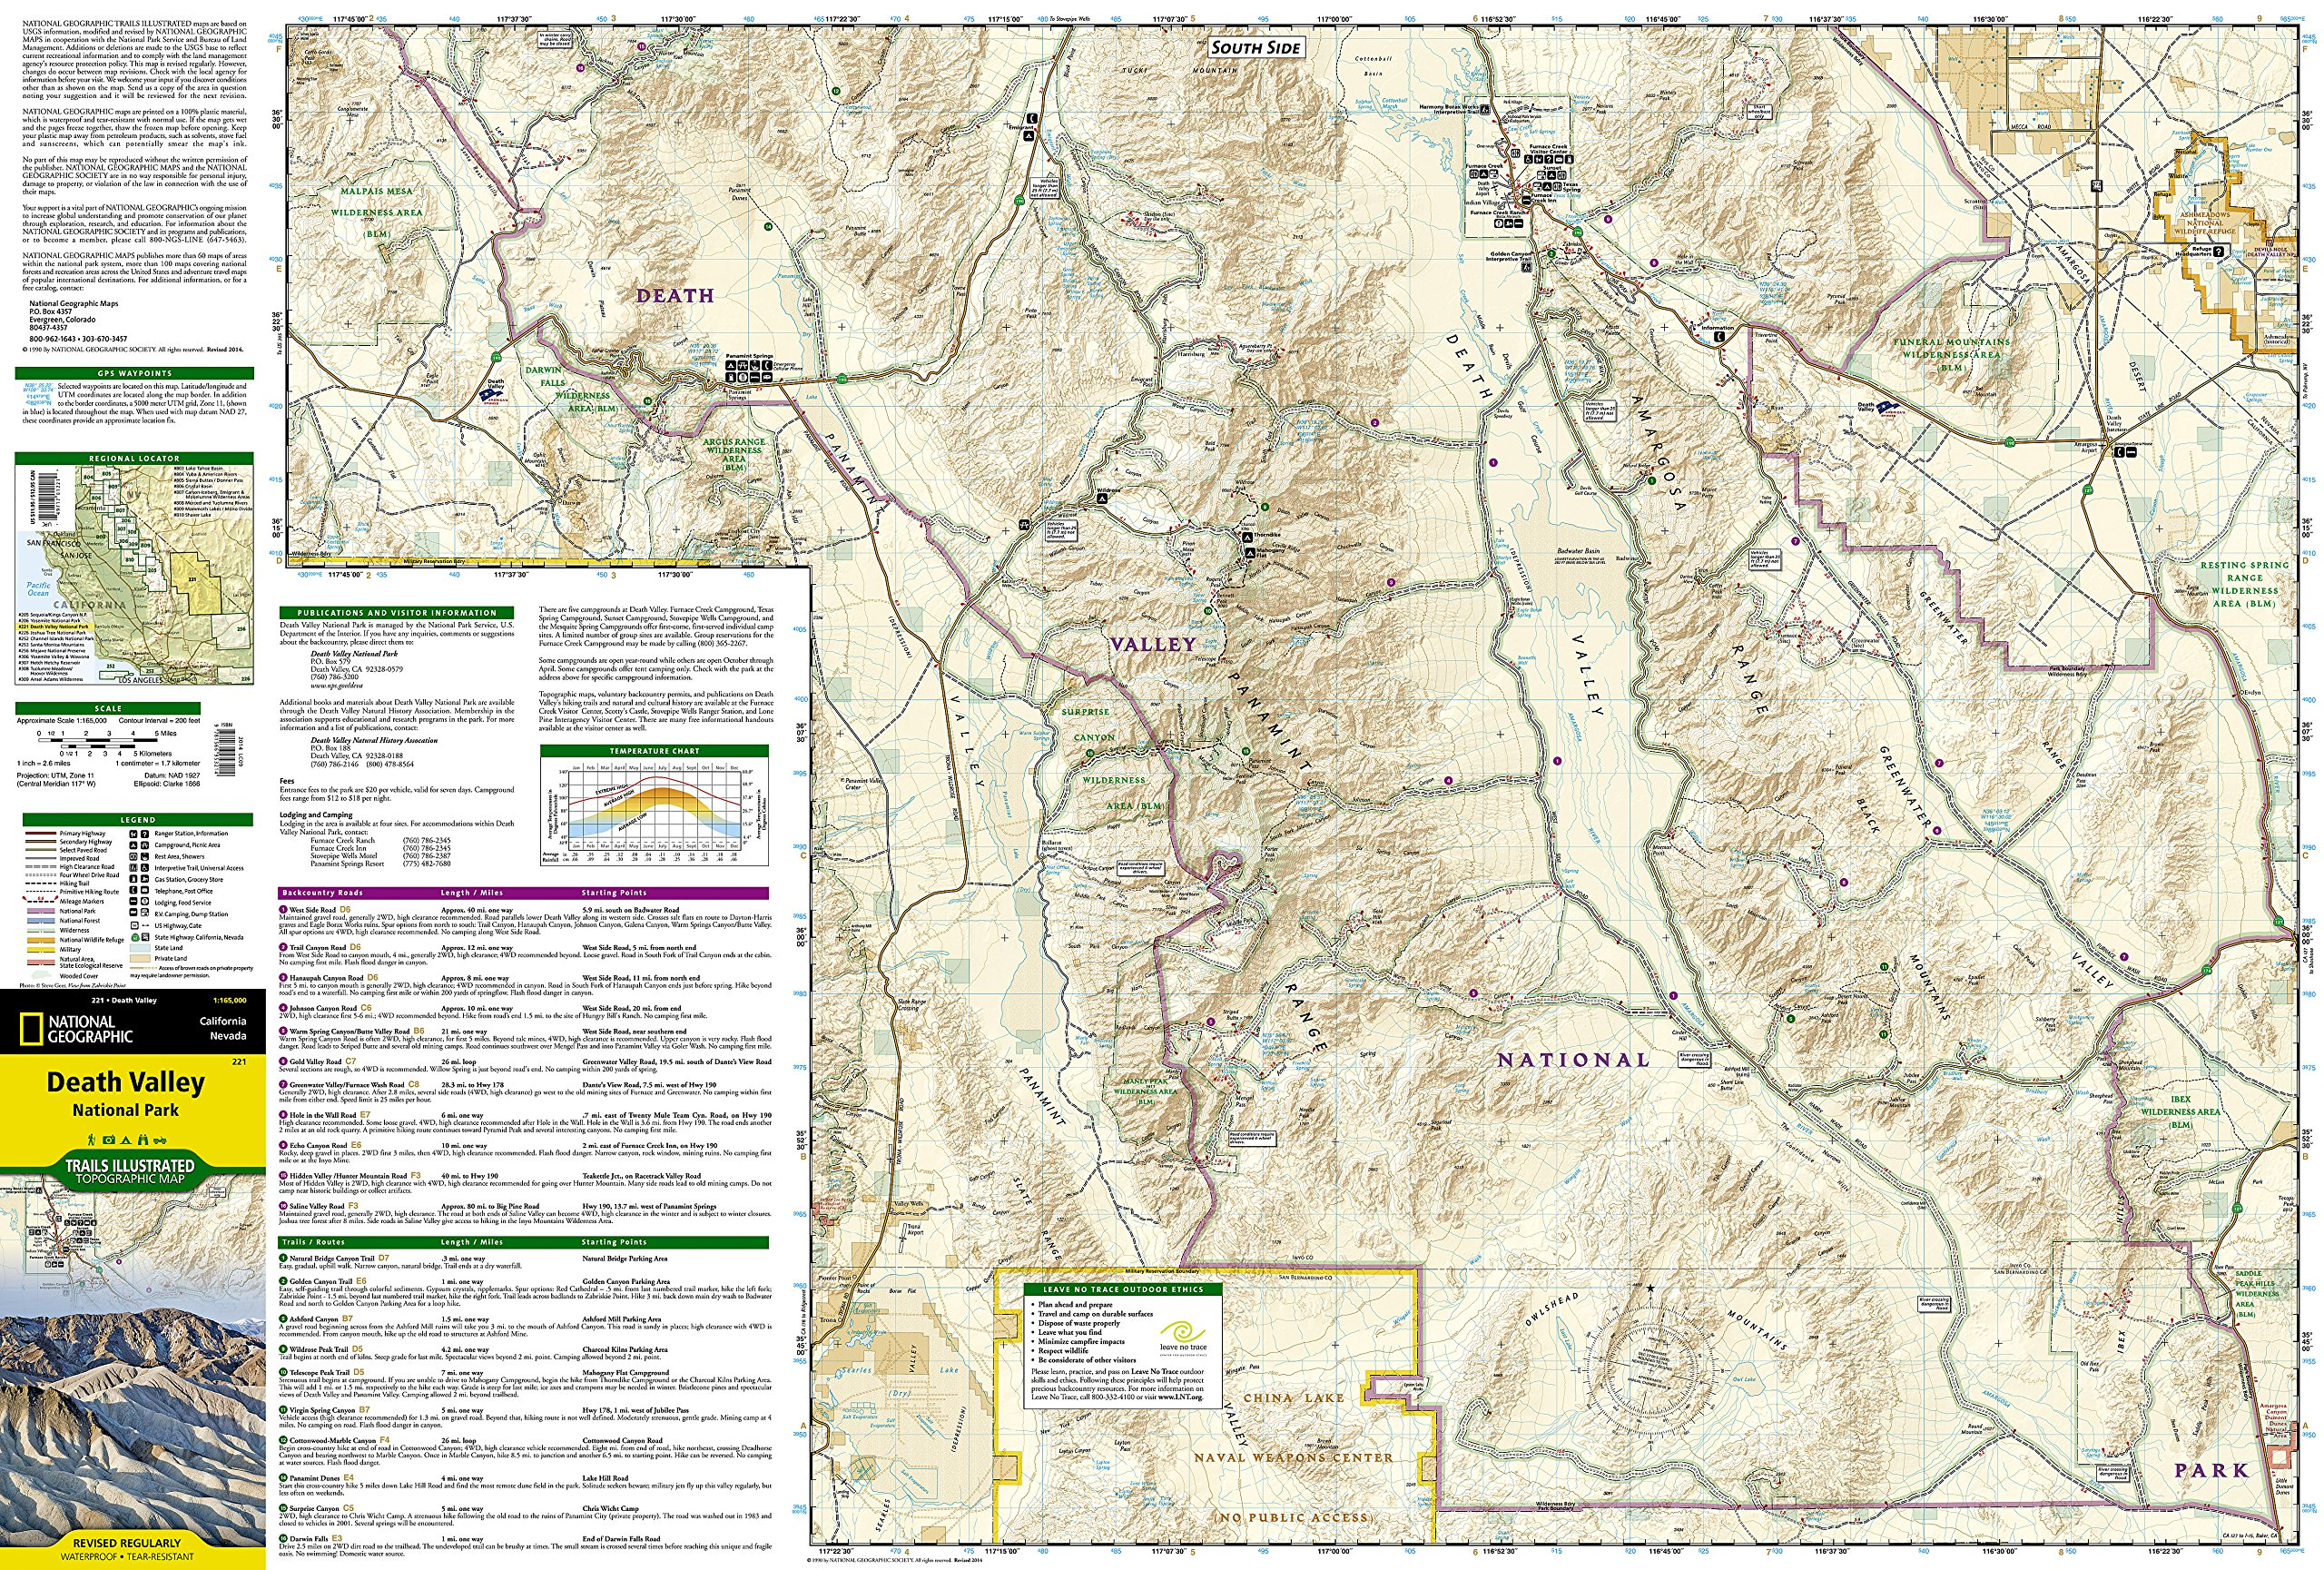 Death Valley National Park National Geographic Trails Illustrated